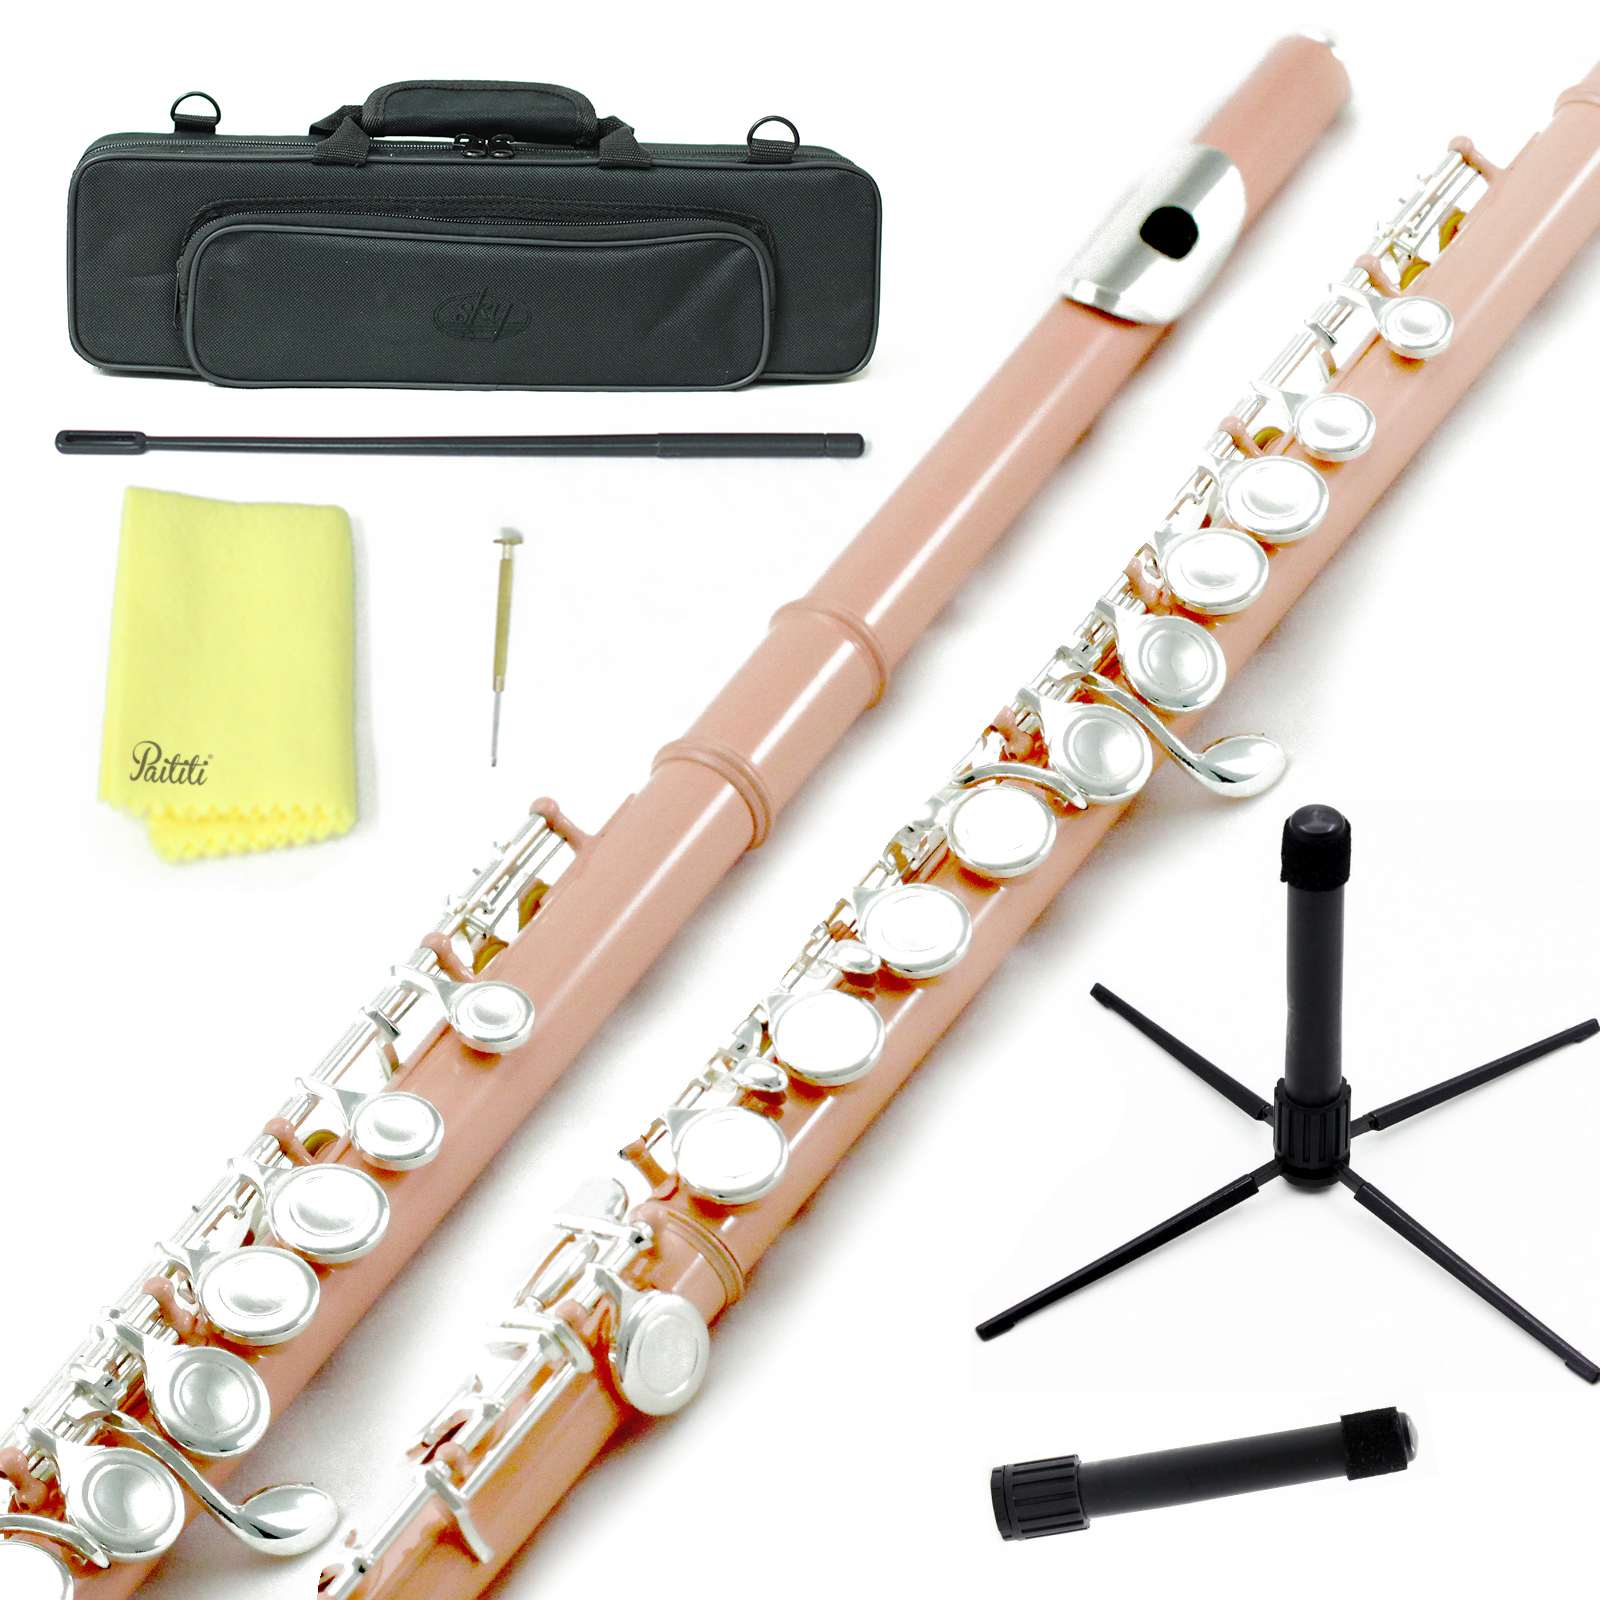 Sky Closed Hole C Flute with Lightweight Case, Cleaning Rod, Cloth, Joint Grease and Screw Driver - Velvet Pink Silver